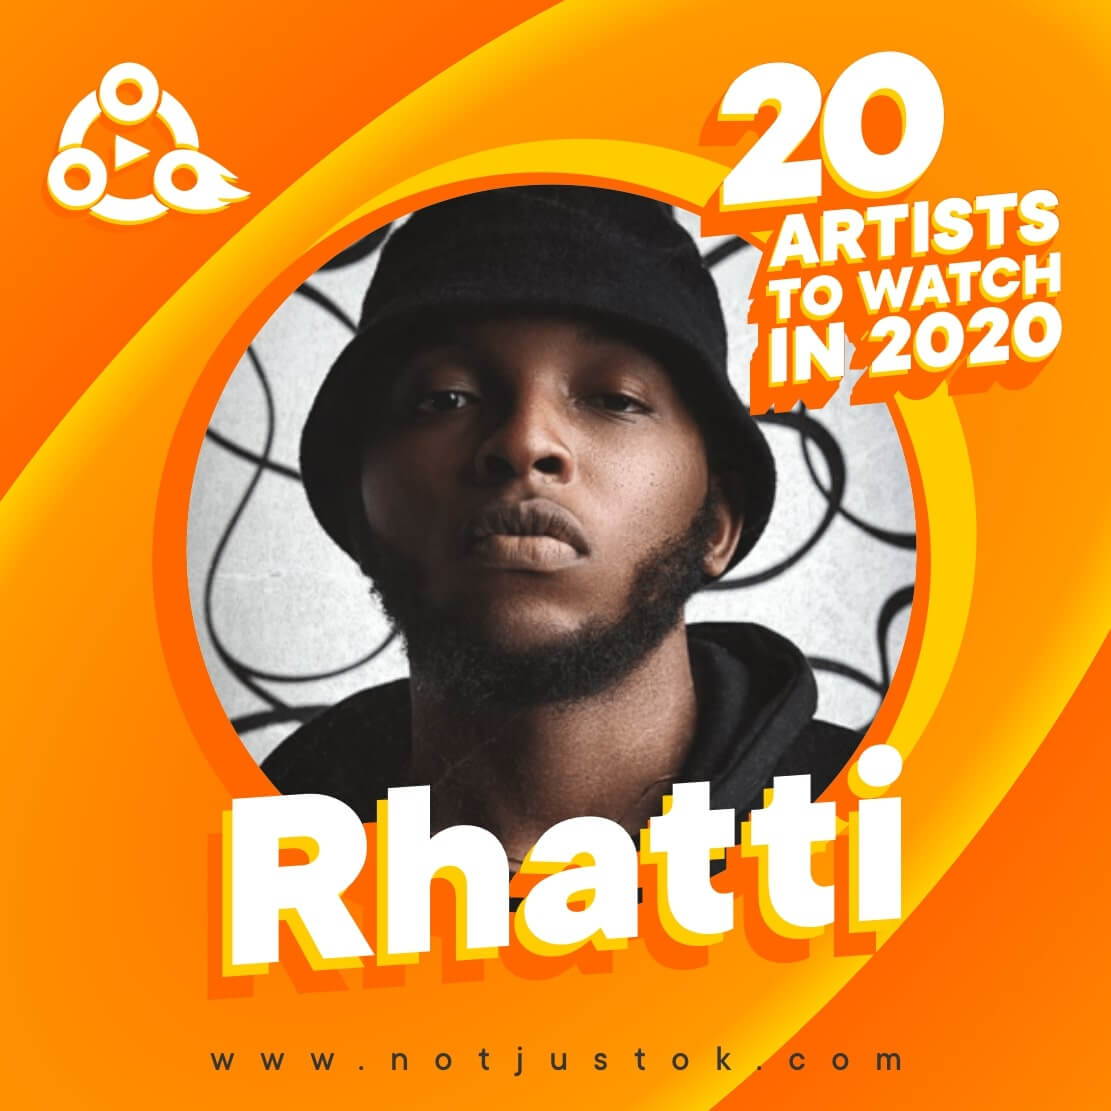 The 20 Artists To Watch In 2020 - Rhatti